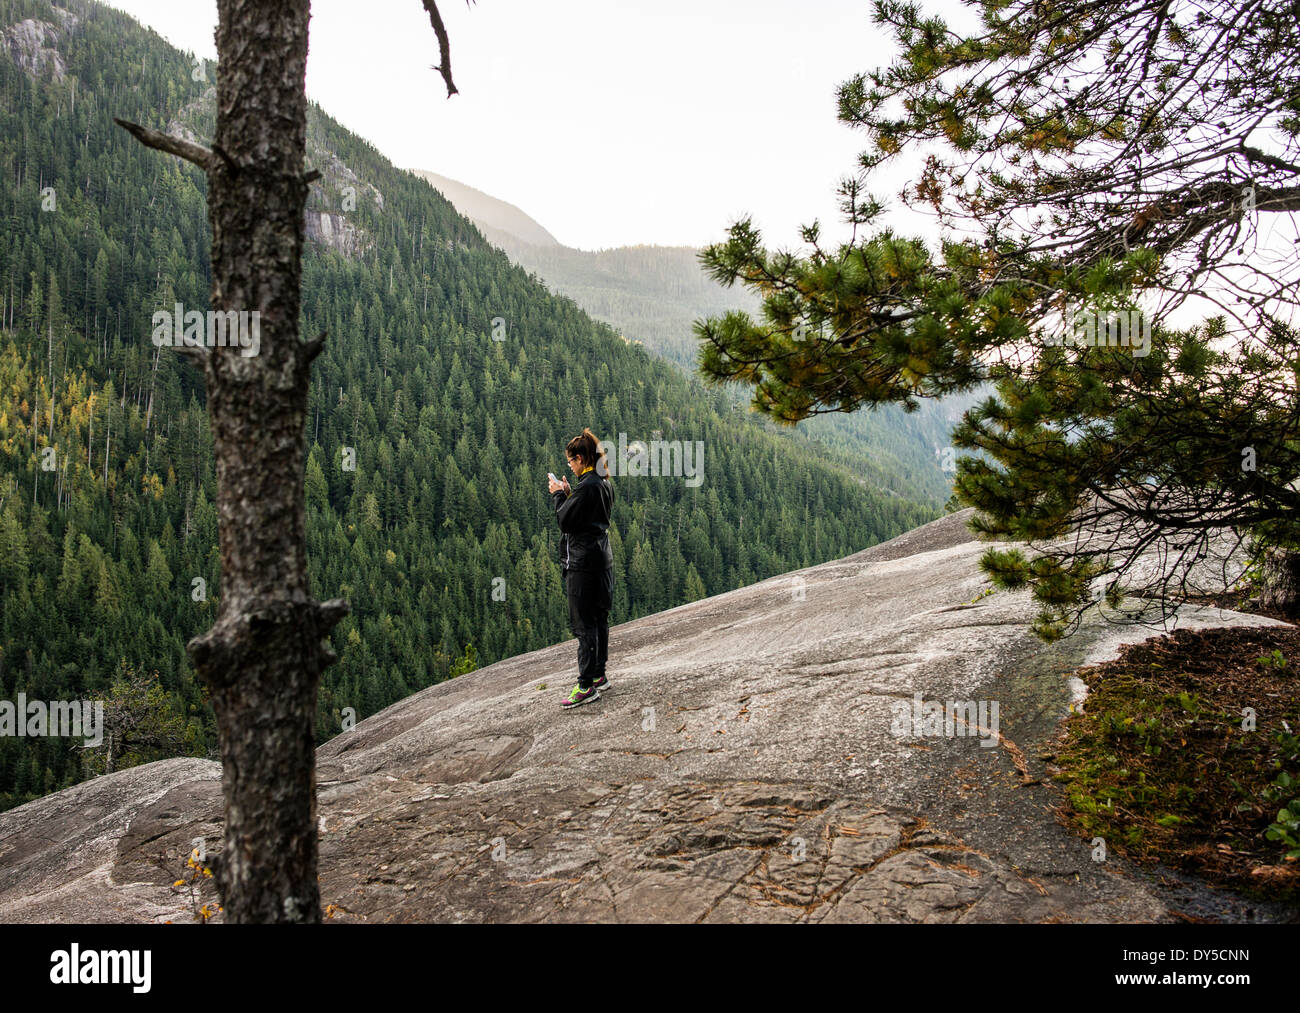 Young woman looking at smartphone, Squamish, British Columbia, Canada Photo Stock